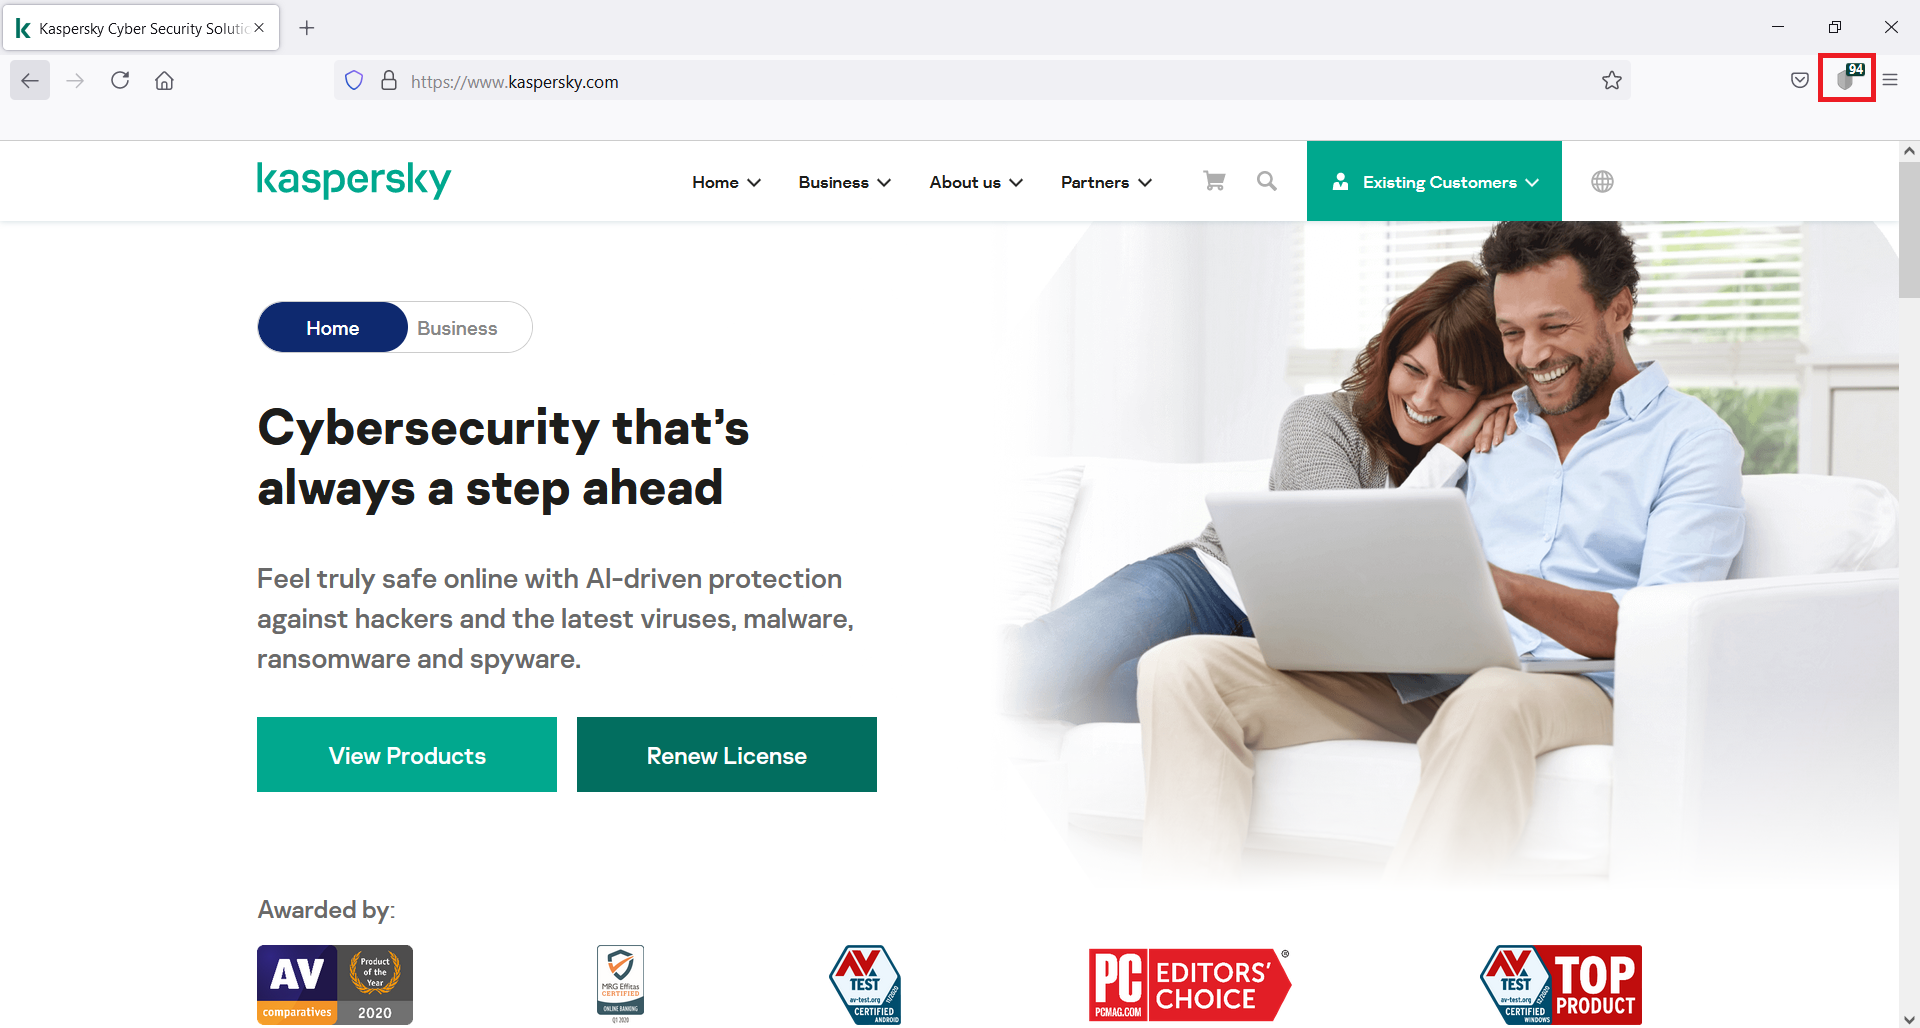 If you have the Kaspersky Protection extension installed, its icon should appear on your browser navigation bar